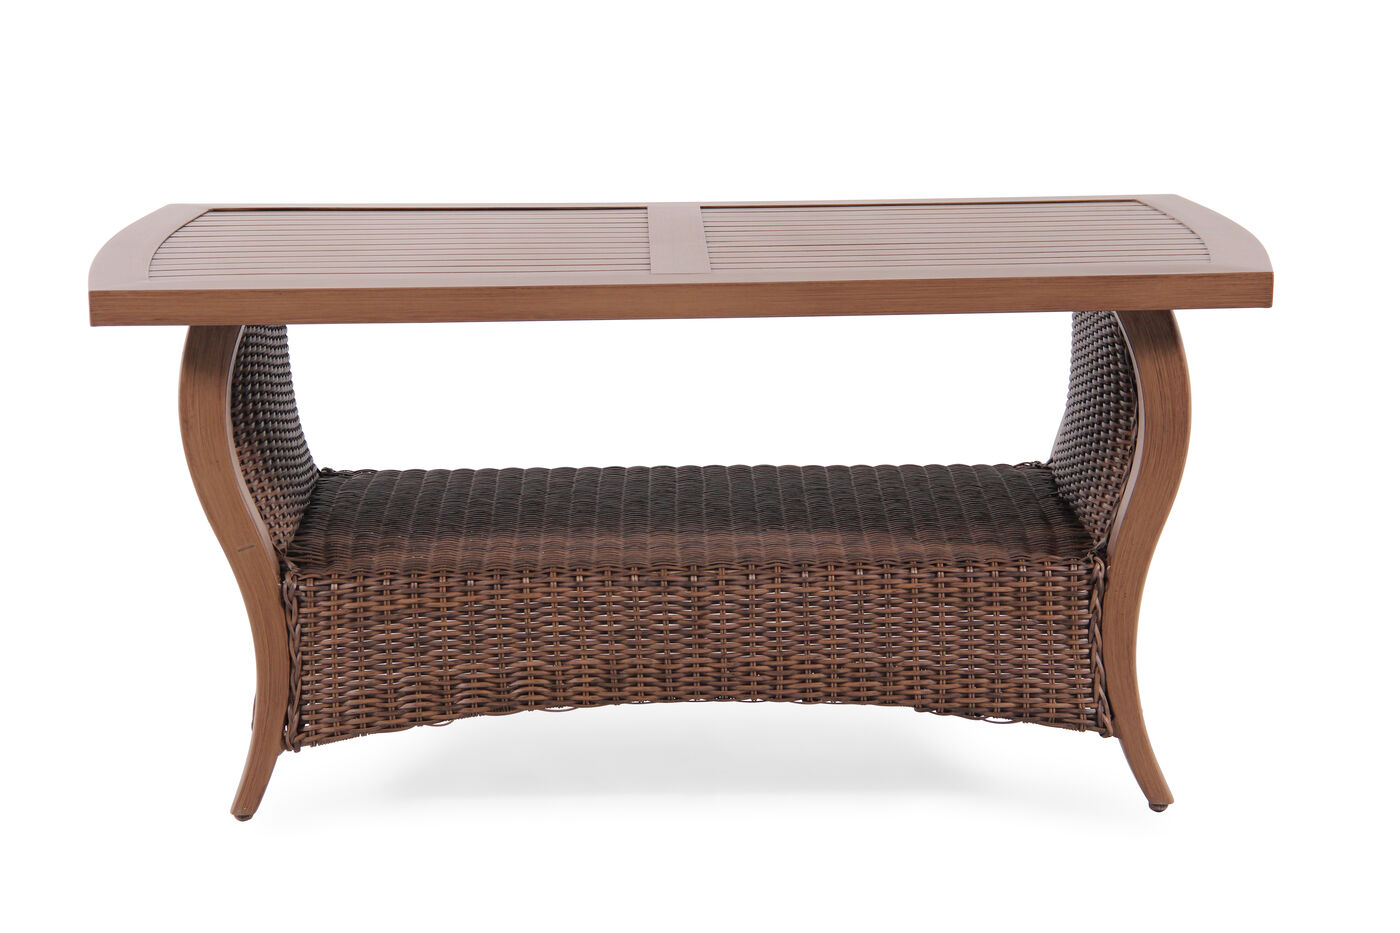 Display Shelf Contemporary Coffee Table In Medium Brown Mathis Brothers Furniture